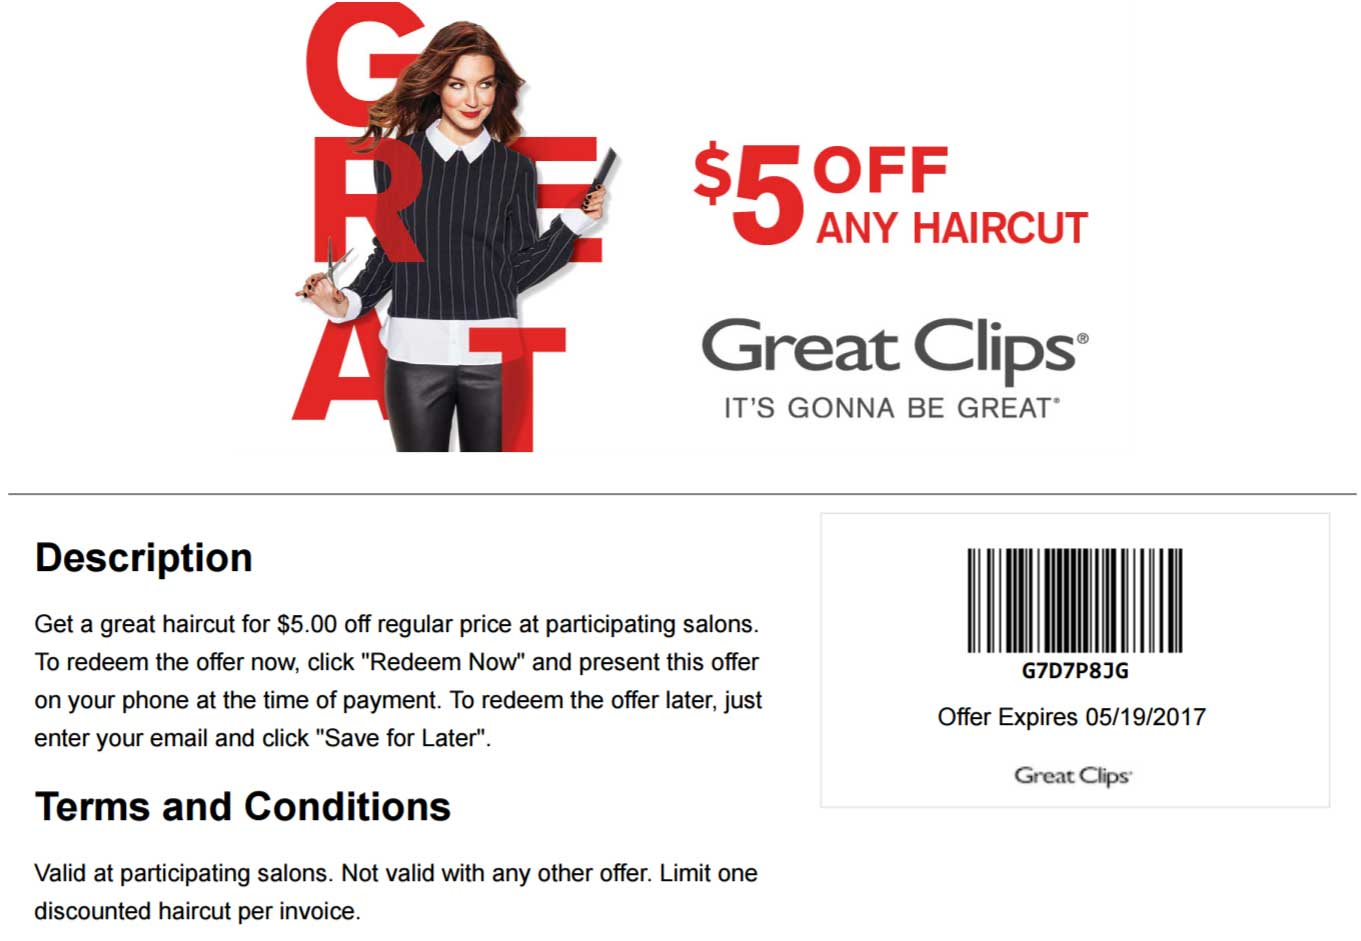 Great Clips Coupon October 2017 $5 off a haircut at Great Clips